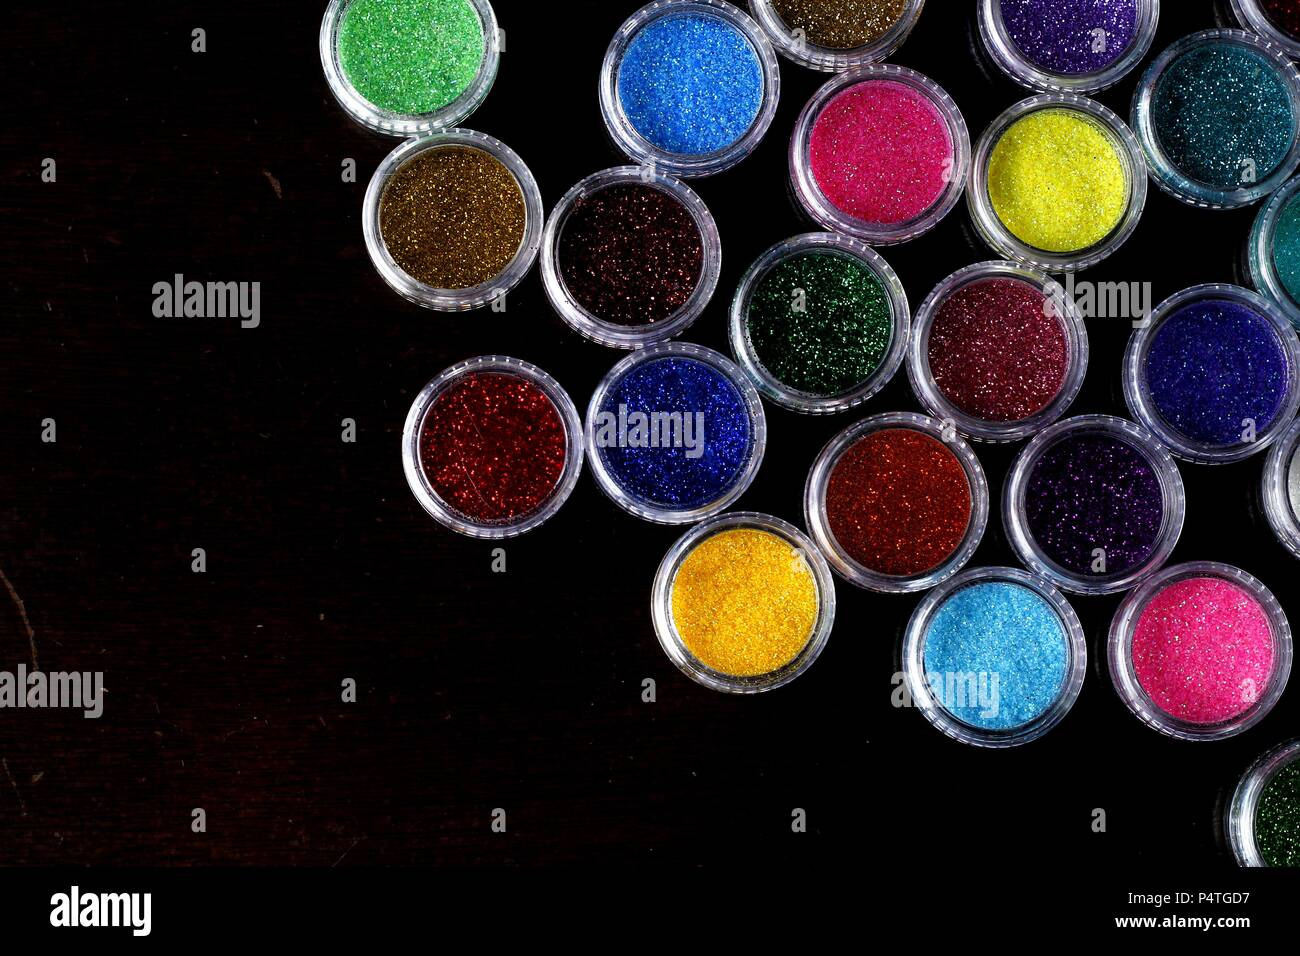 Photo of assorted colorful nail polish glitters Stock Photo